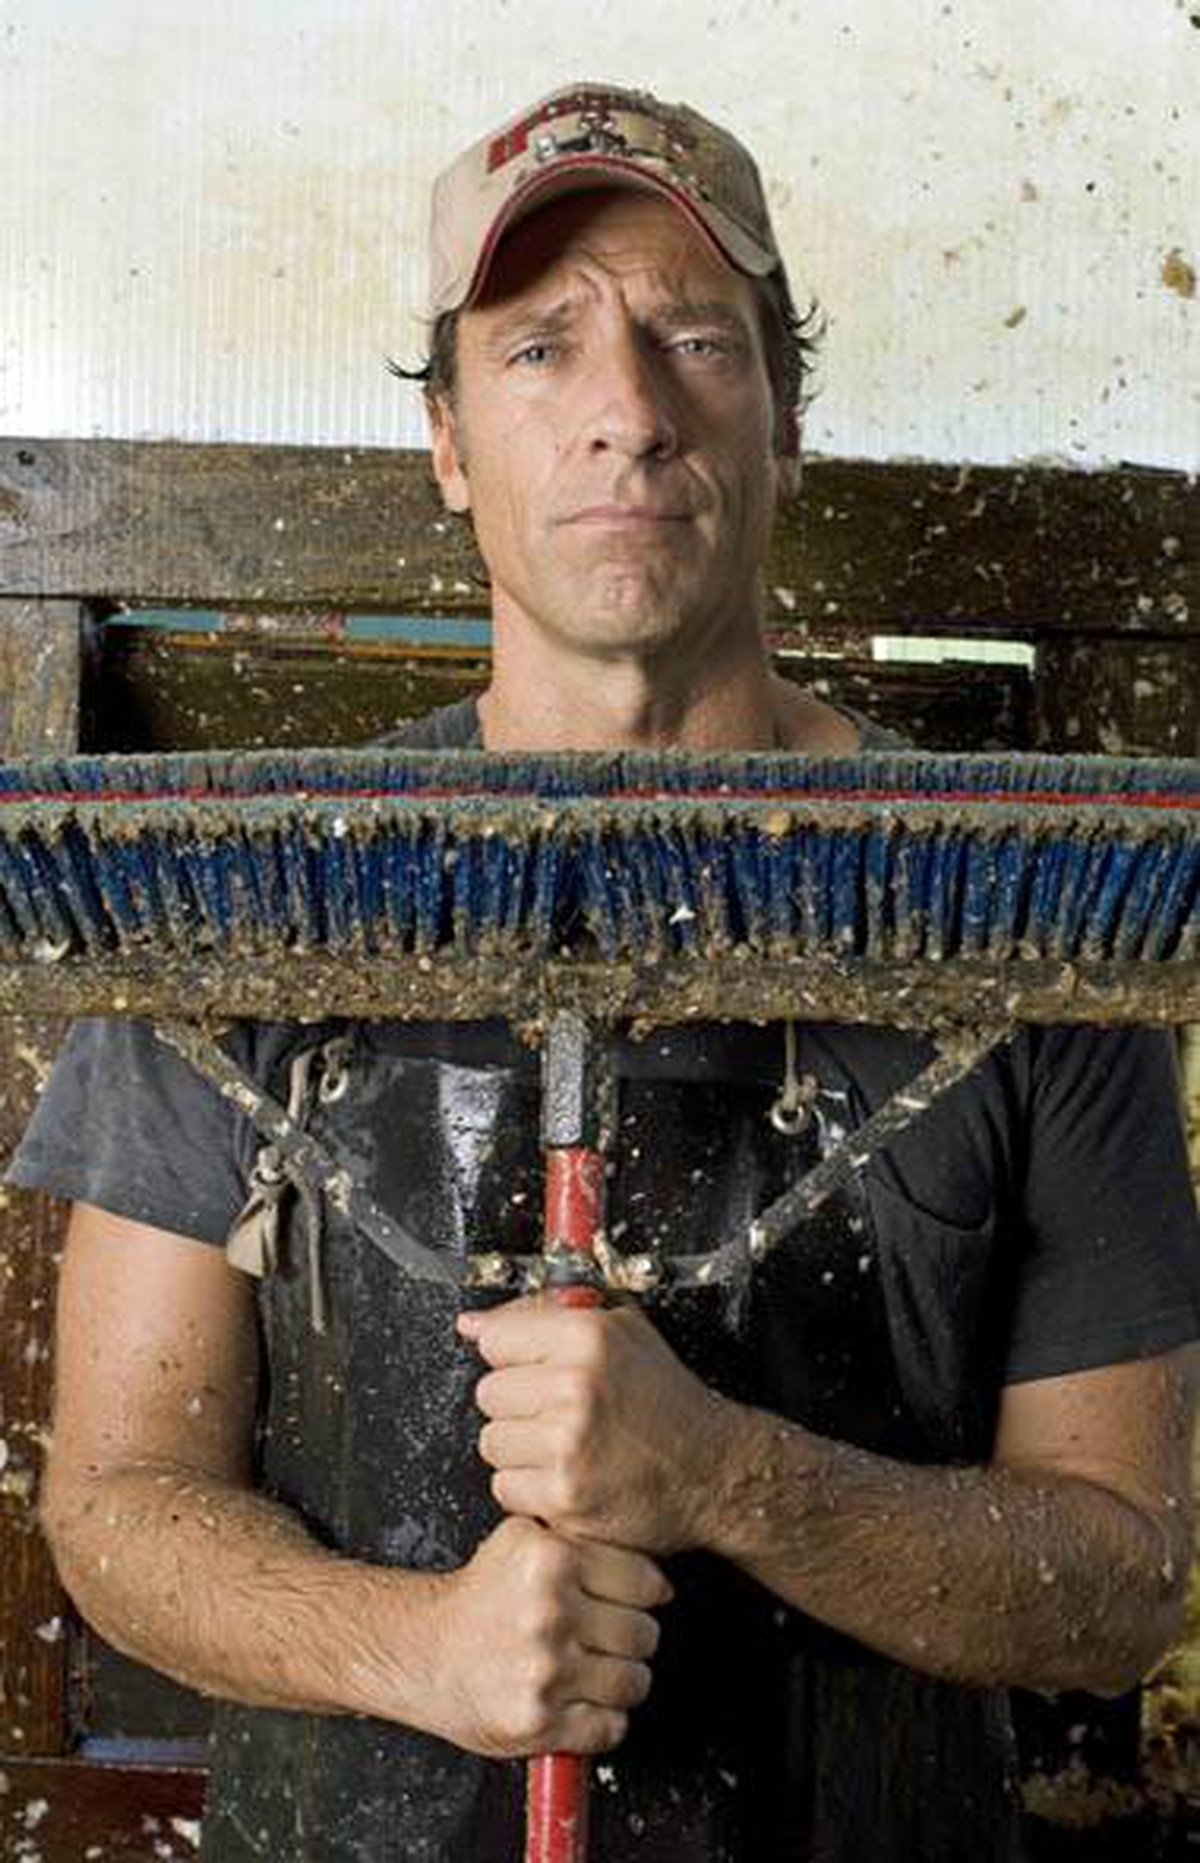 REALITY Dirty Jobs Discovery, 9 p.m. If any man needs a break in his work routine, it's Mike Rowe. Over six seasons and more than 150 episodes, he's rolled up his sleeves to perform hundreds of nasty vocations that would have most people running for the door. Take your pick: Roadkill cleaner or maggot farmer. But Iron Mike never complains, so he probably deserves the break he received shooting tonight's episode. He first becomes a jelly-bean maker at the factory of U.S. candy giant Jelly Belly. Next, he goes blueberry harvesting and then bakes a lovely blueberry pie. Back to the nasty stuff next week.